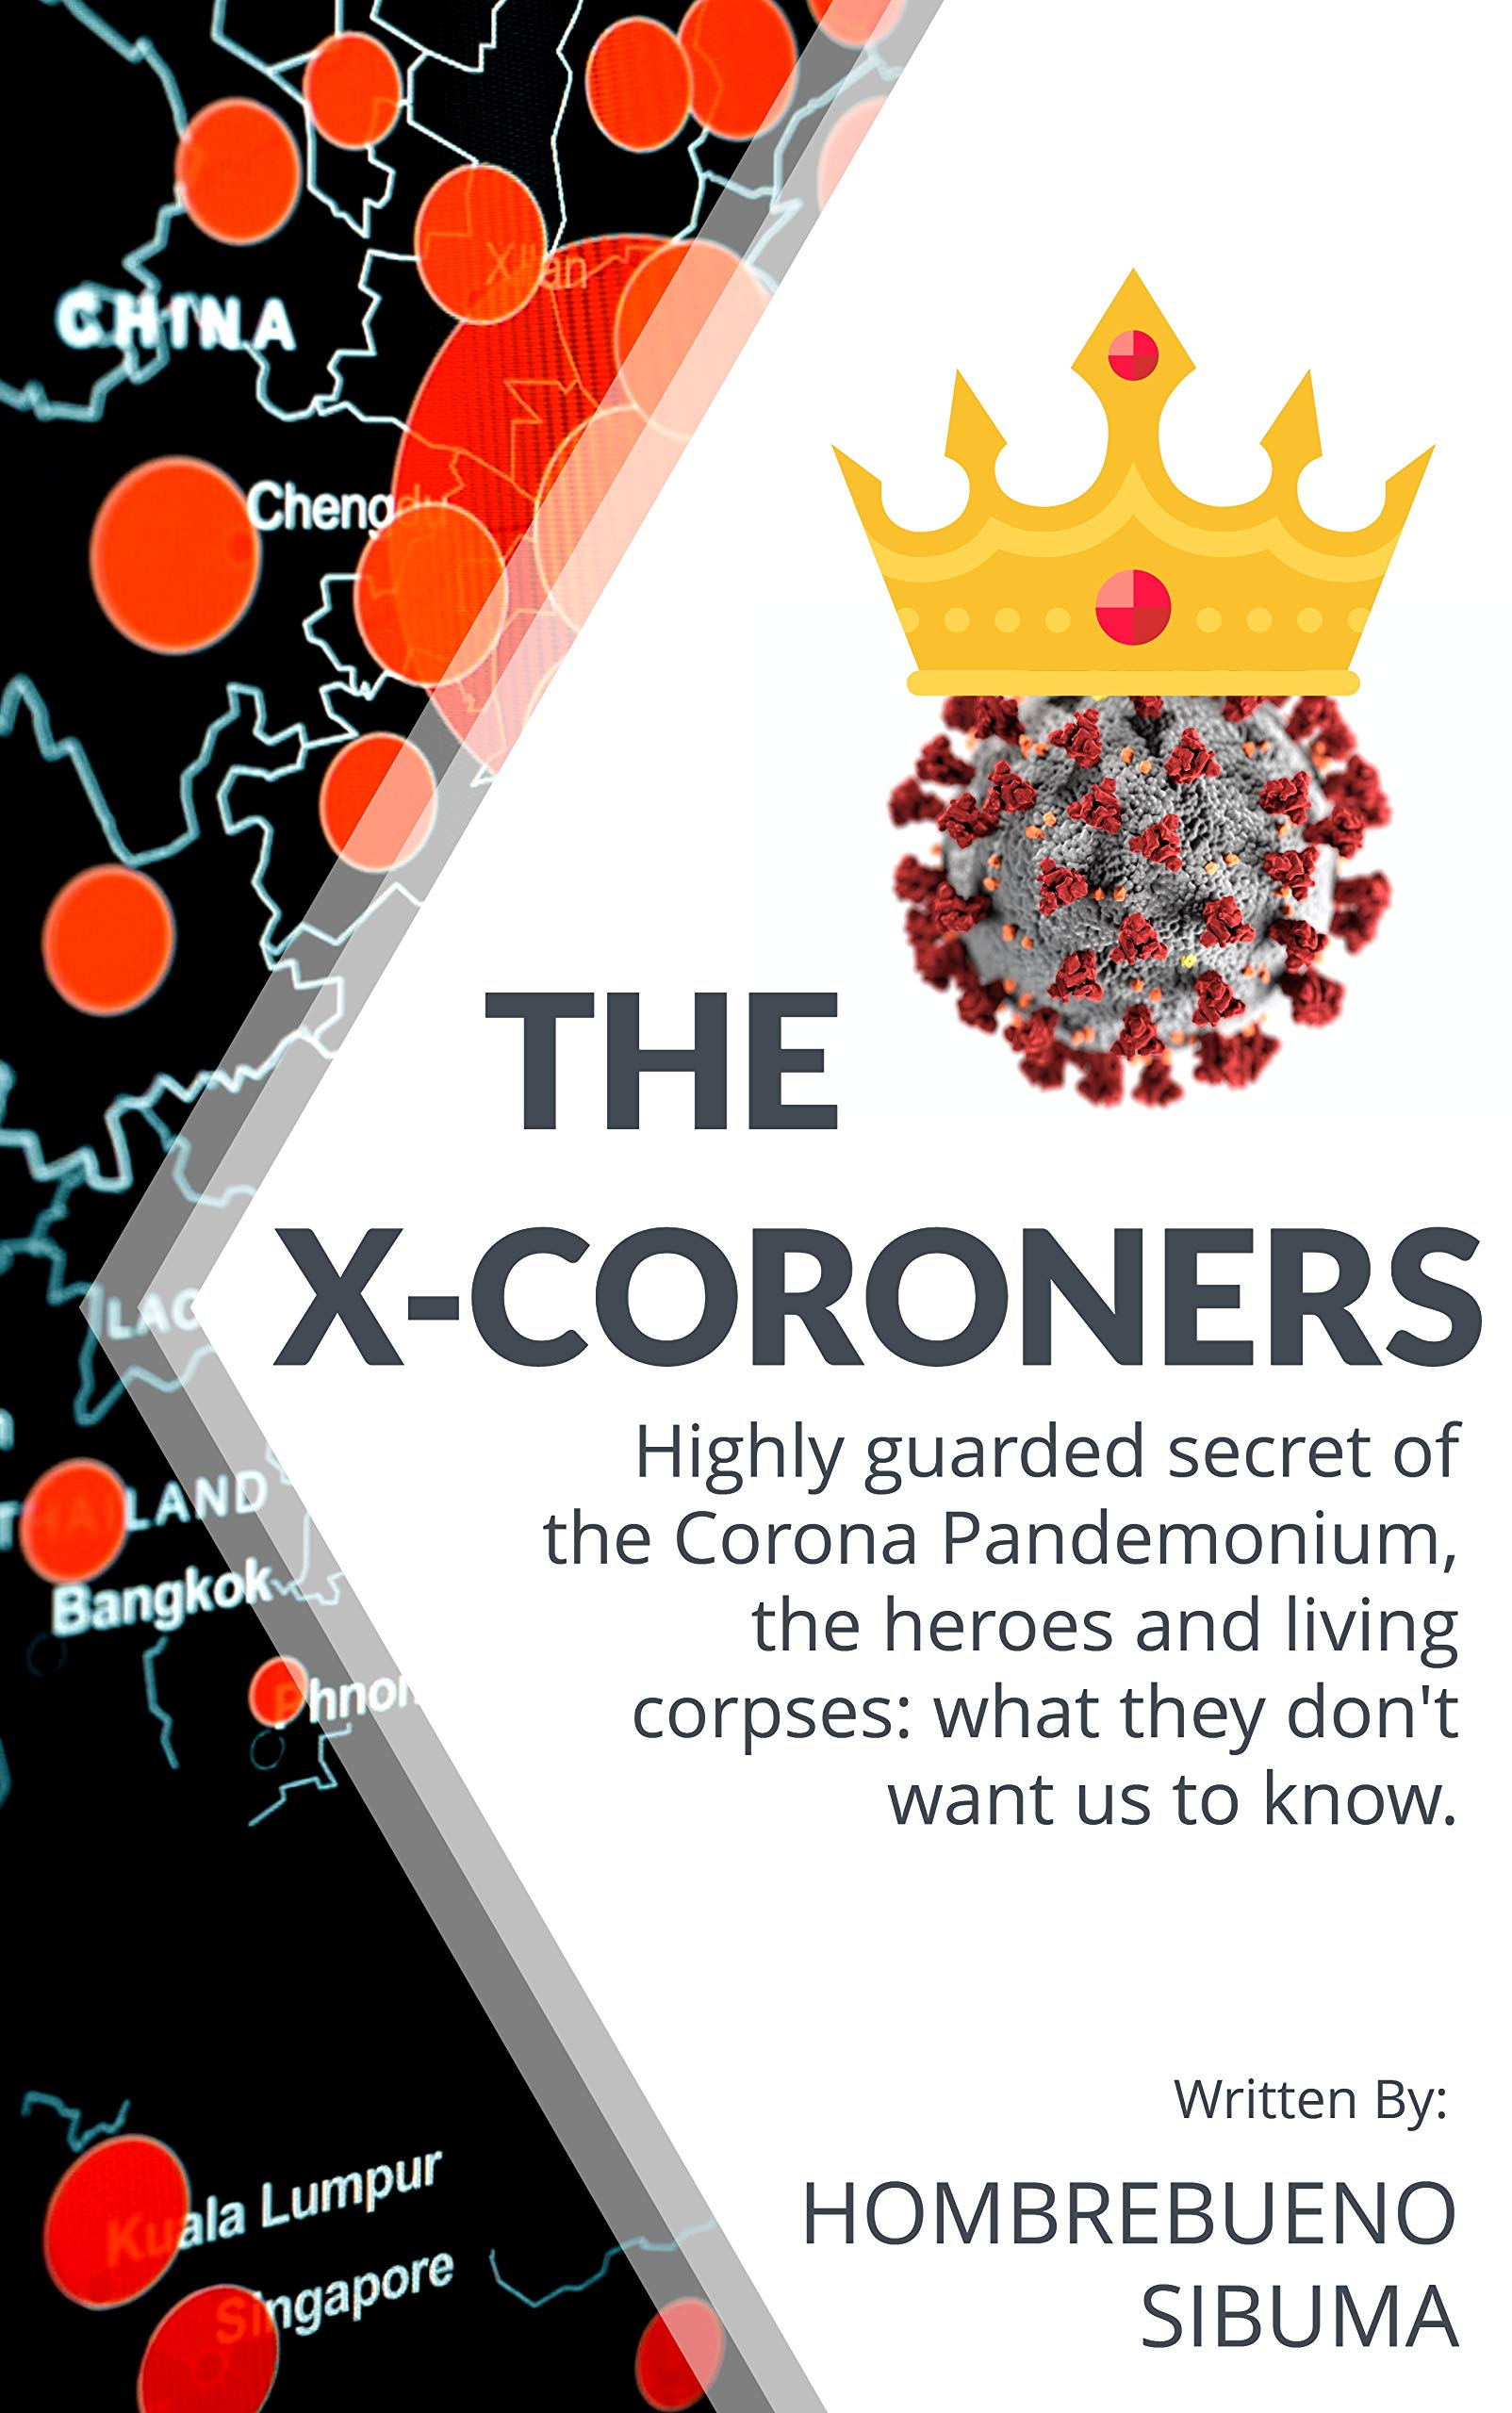 The X-Coroners: Highly Guarded Secret of the Corona Pandemonium, the heroes and living corpses: what they don't want us to know